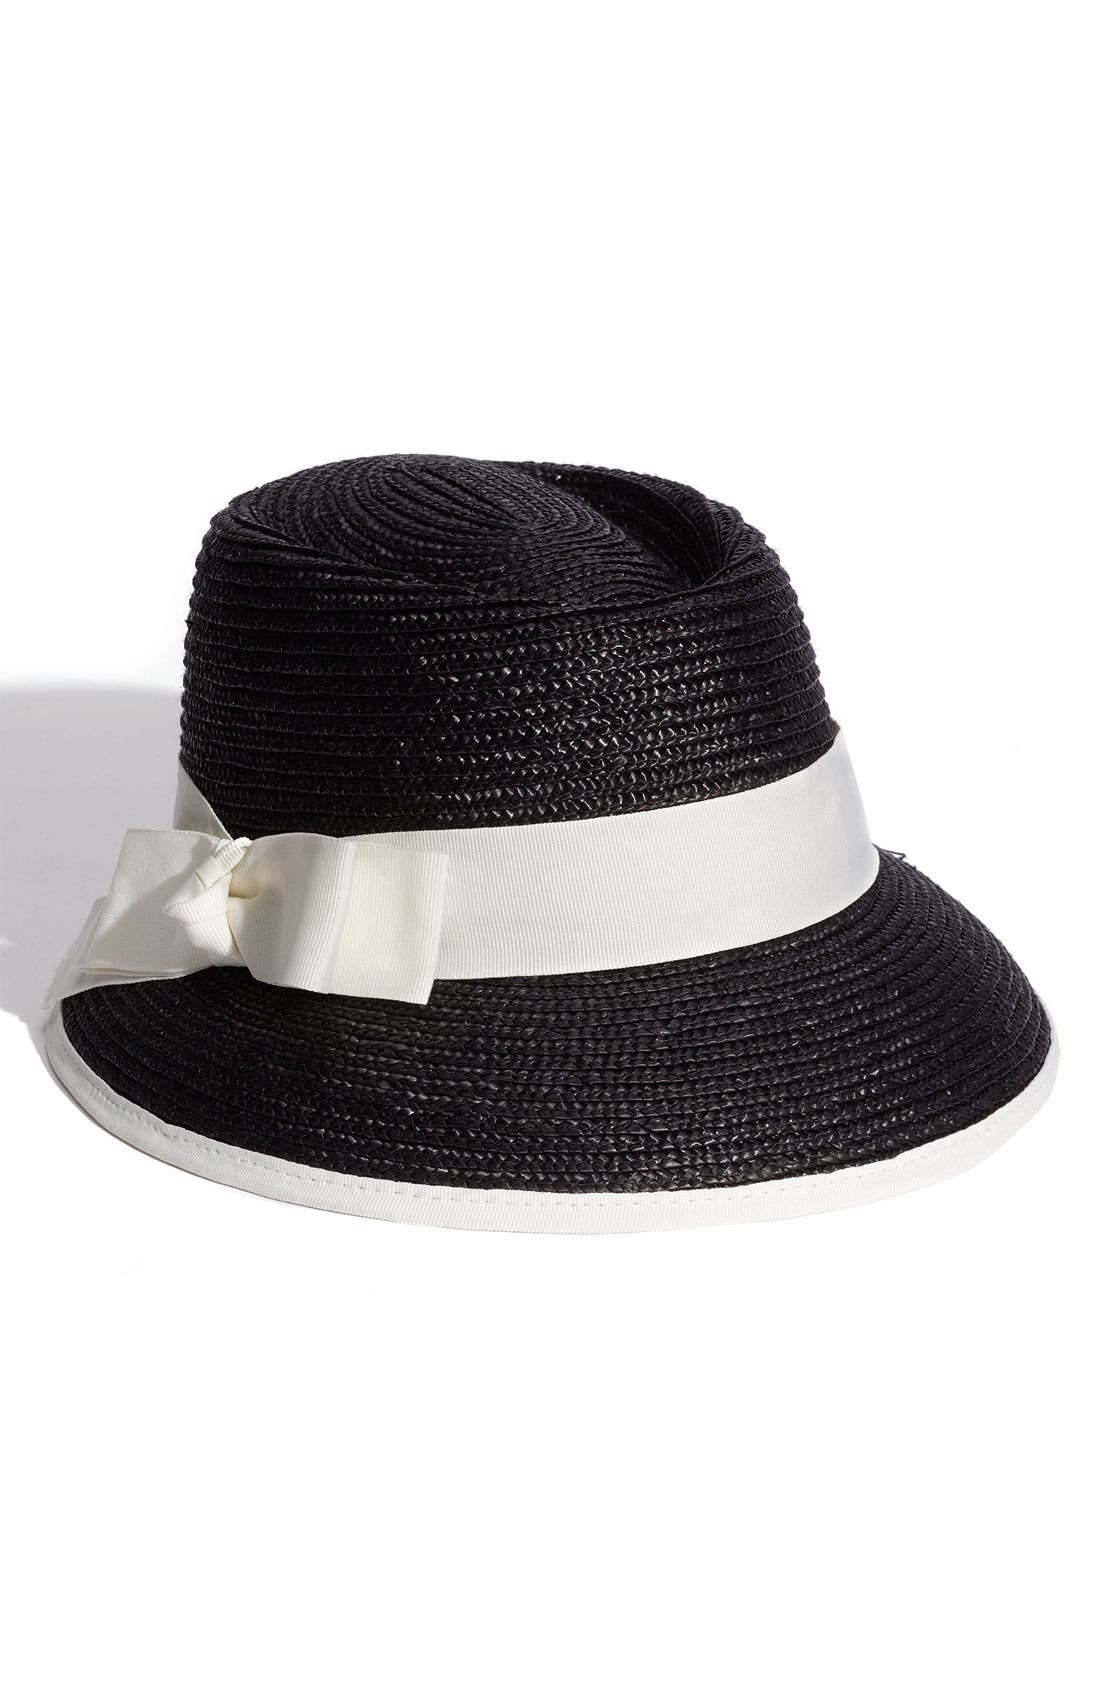 Alternate Image 1 Selected - Halogen® 'Long Brim' Straw Hat